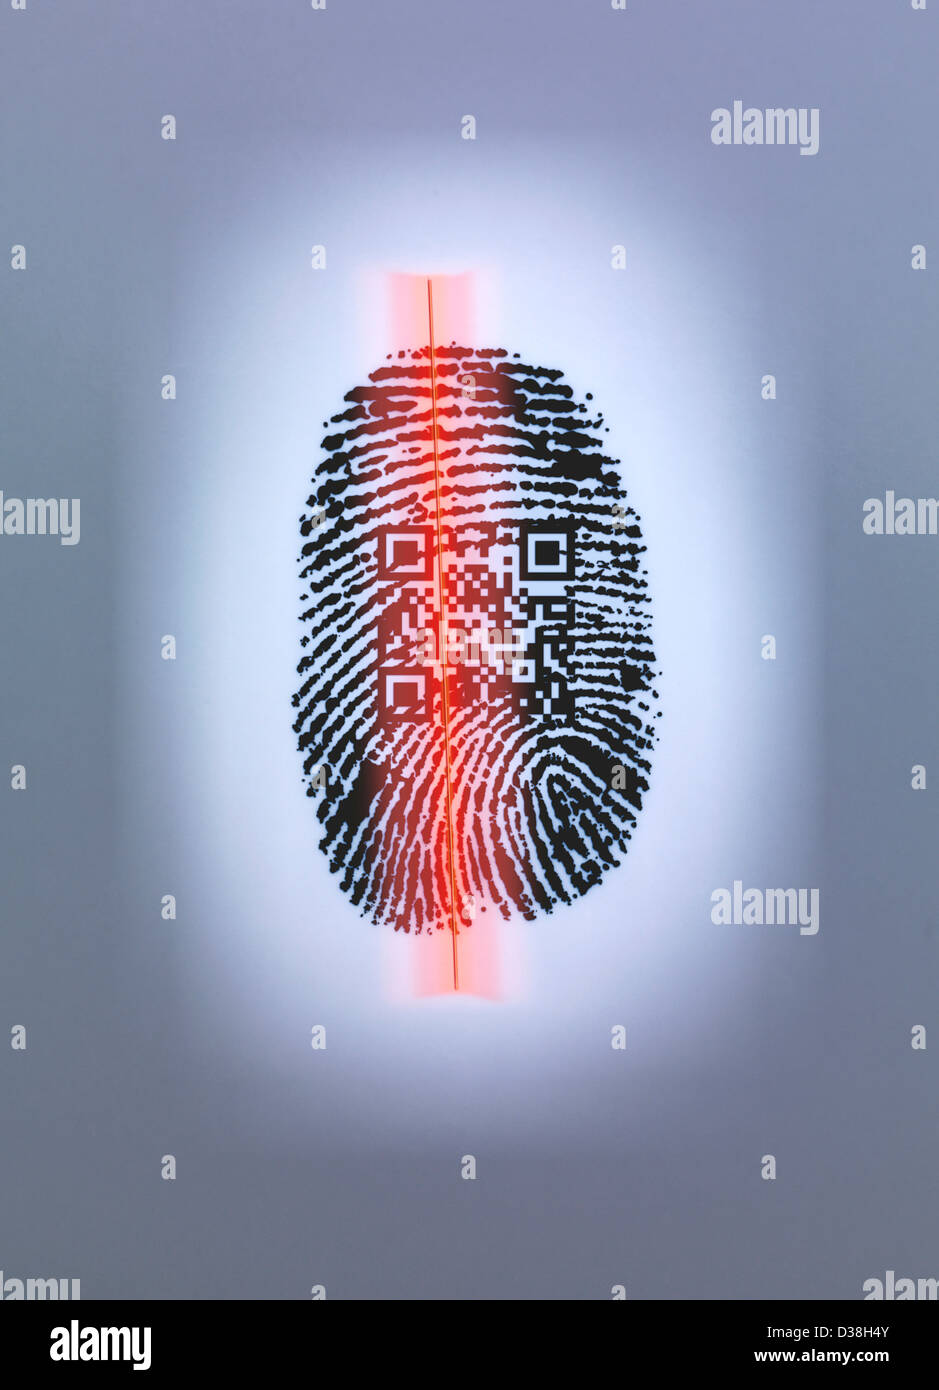 Fingerprint and QR code in scanner - Stock Image